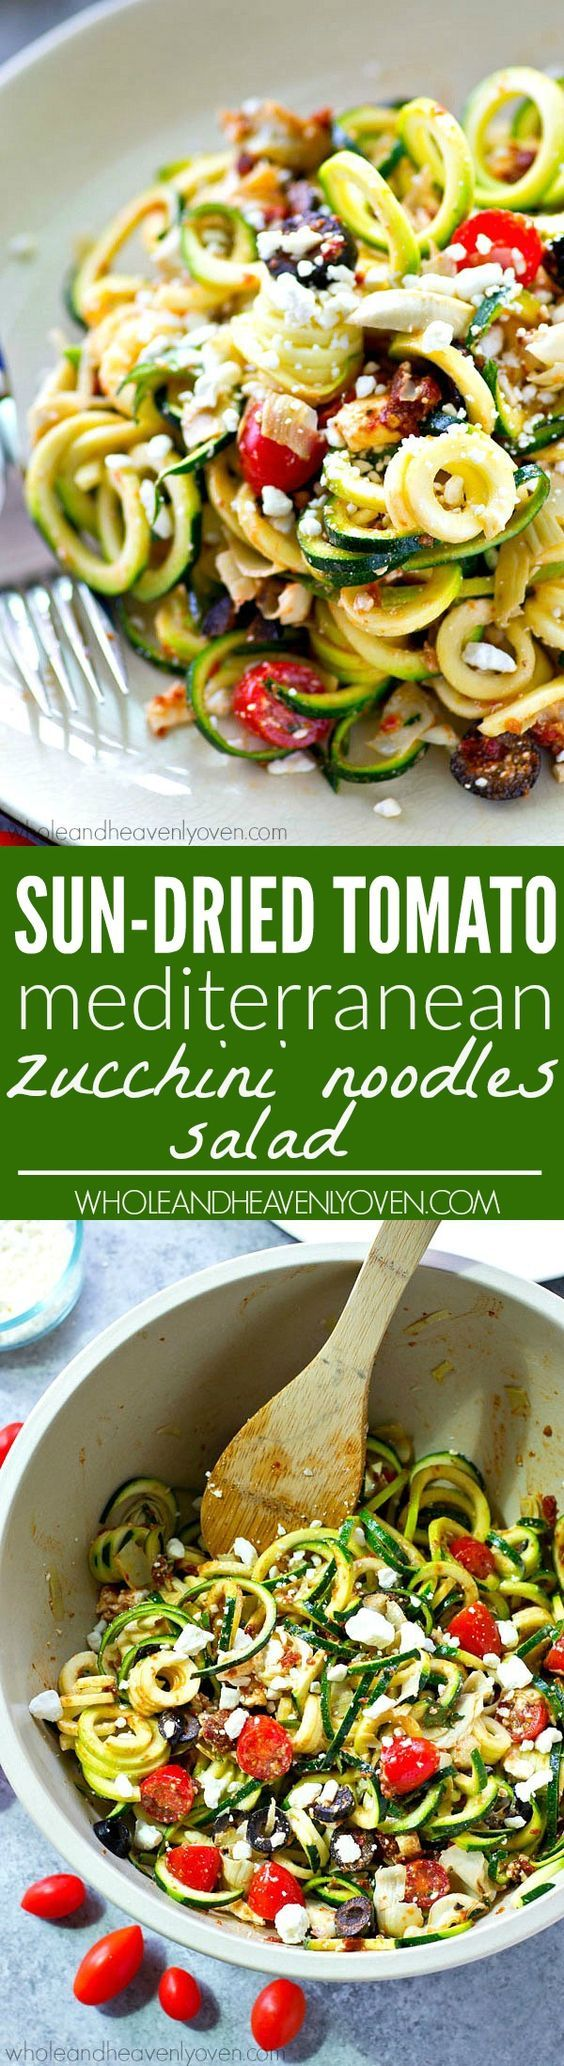 You won't be able to stop eating this flavorful zucchini noodles salad! Loaded with tons of fresh, healthy Mediterranean goodness and an unbelievable sun-dried tomato dressing. | Whole and Heavenly Oven